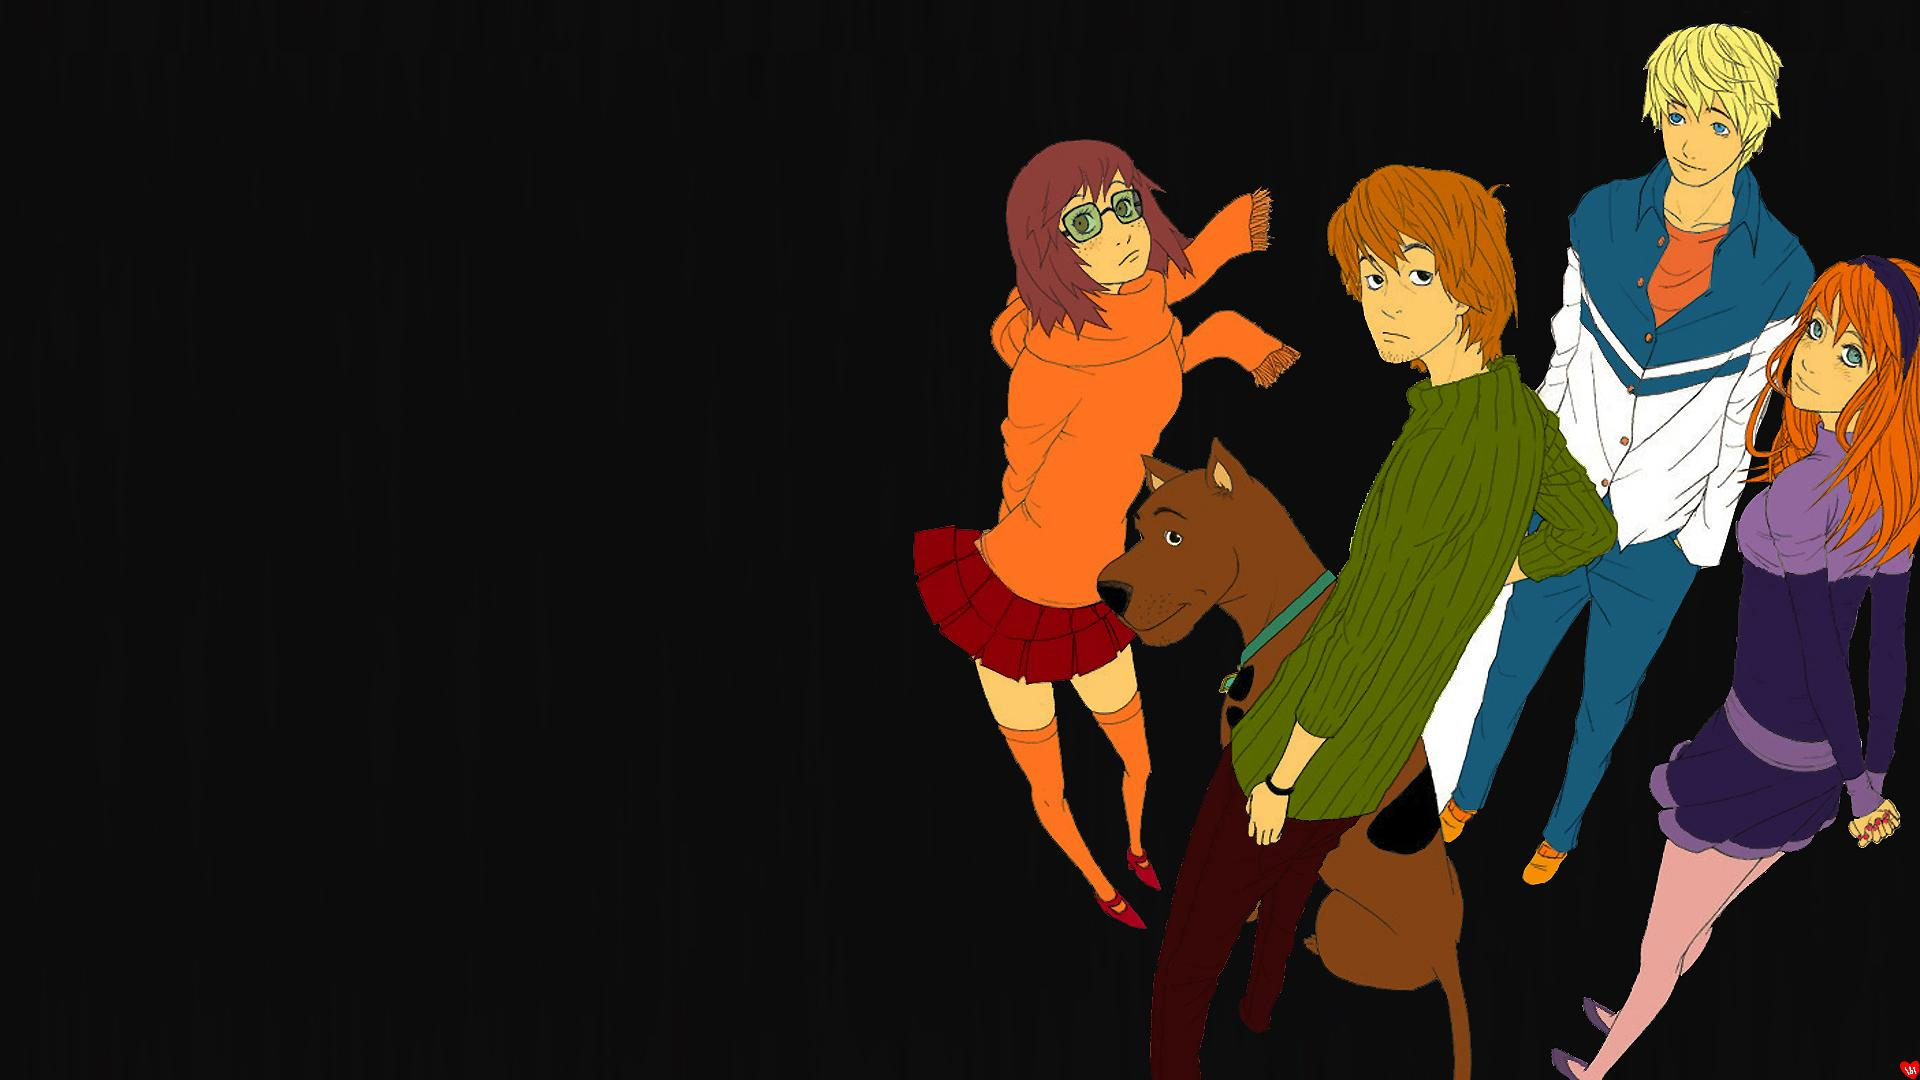 Scooby Doo Wallpapers Free Download